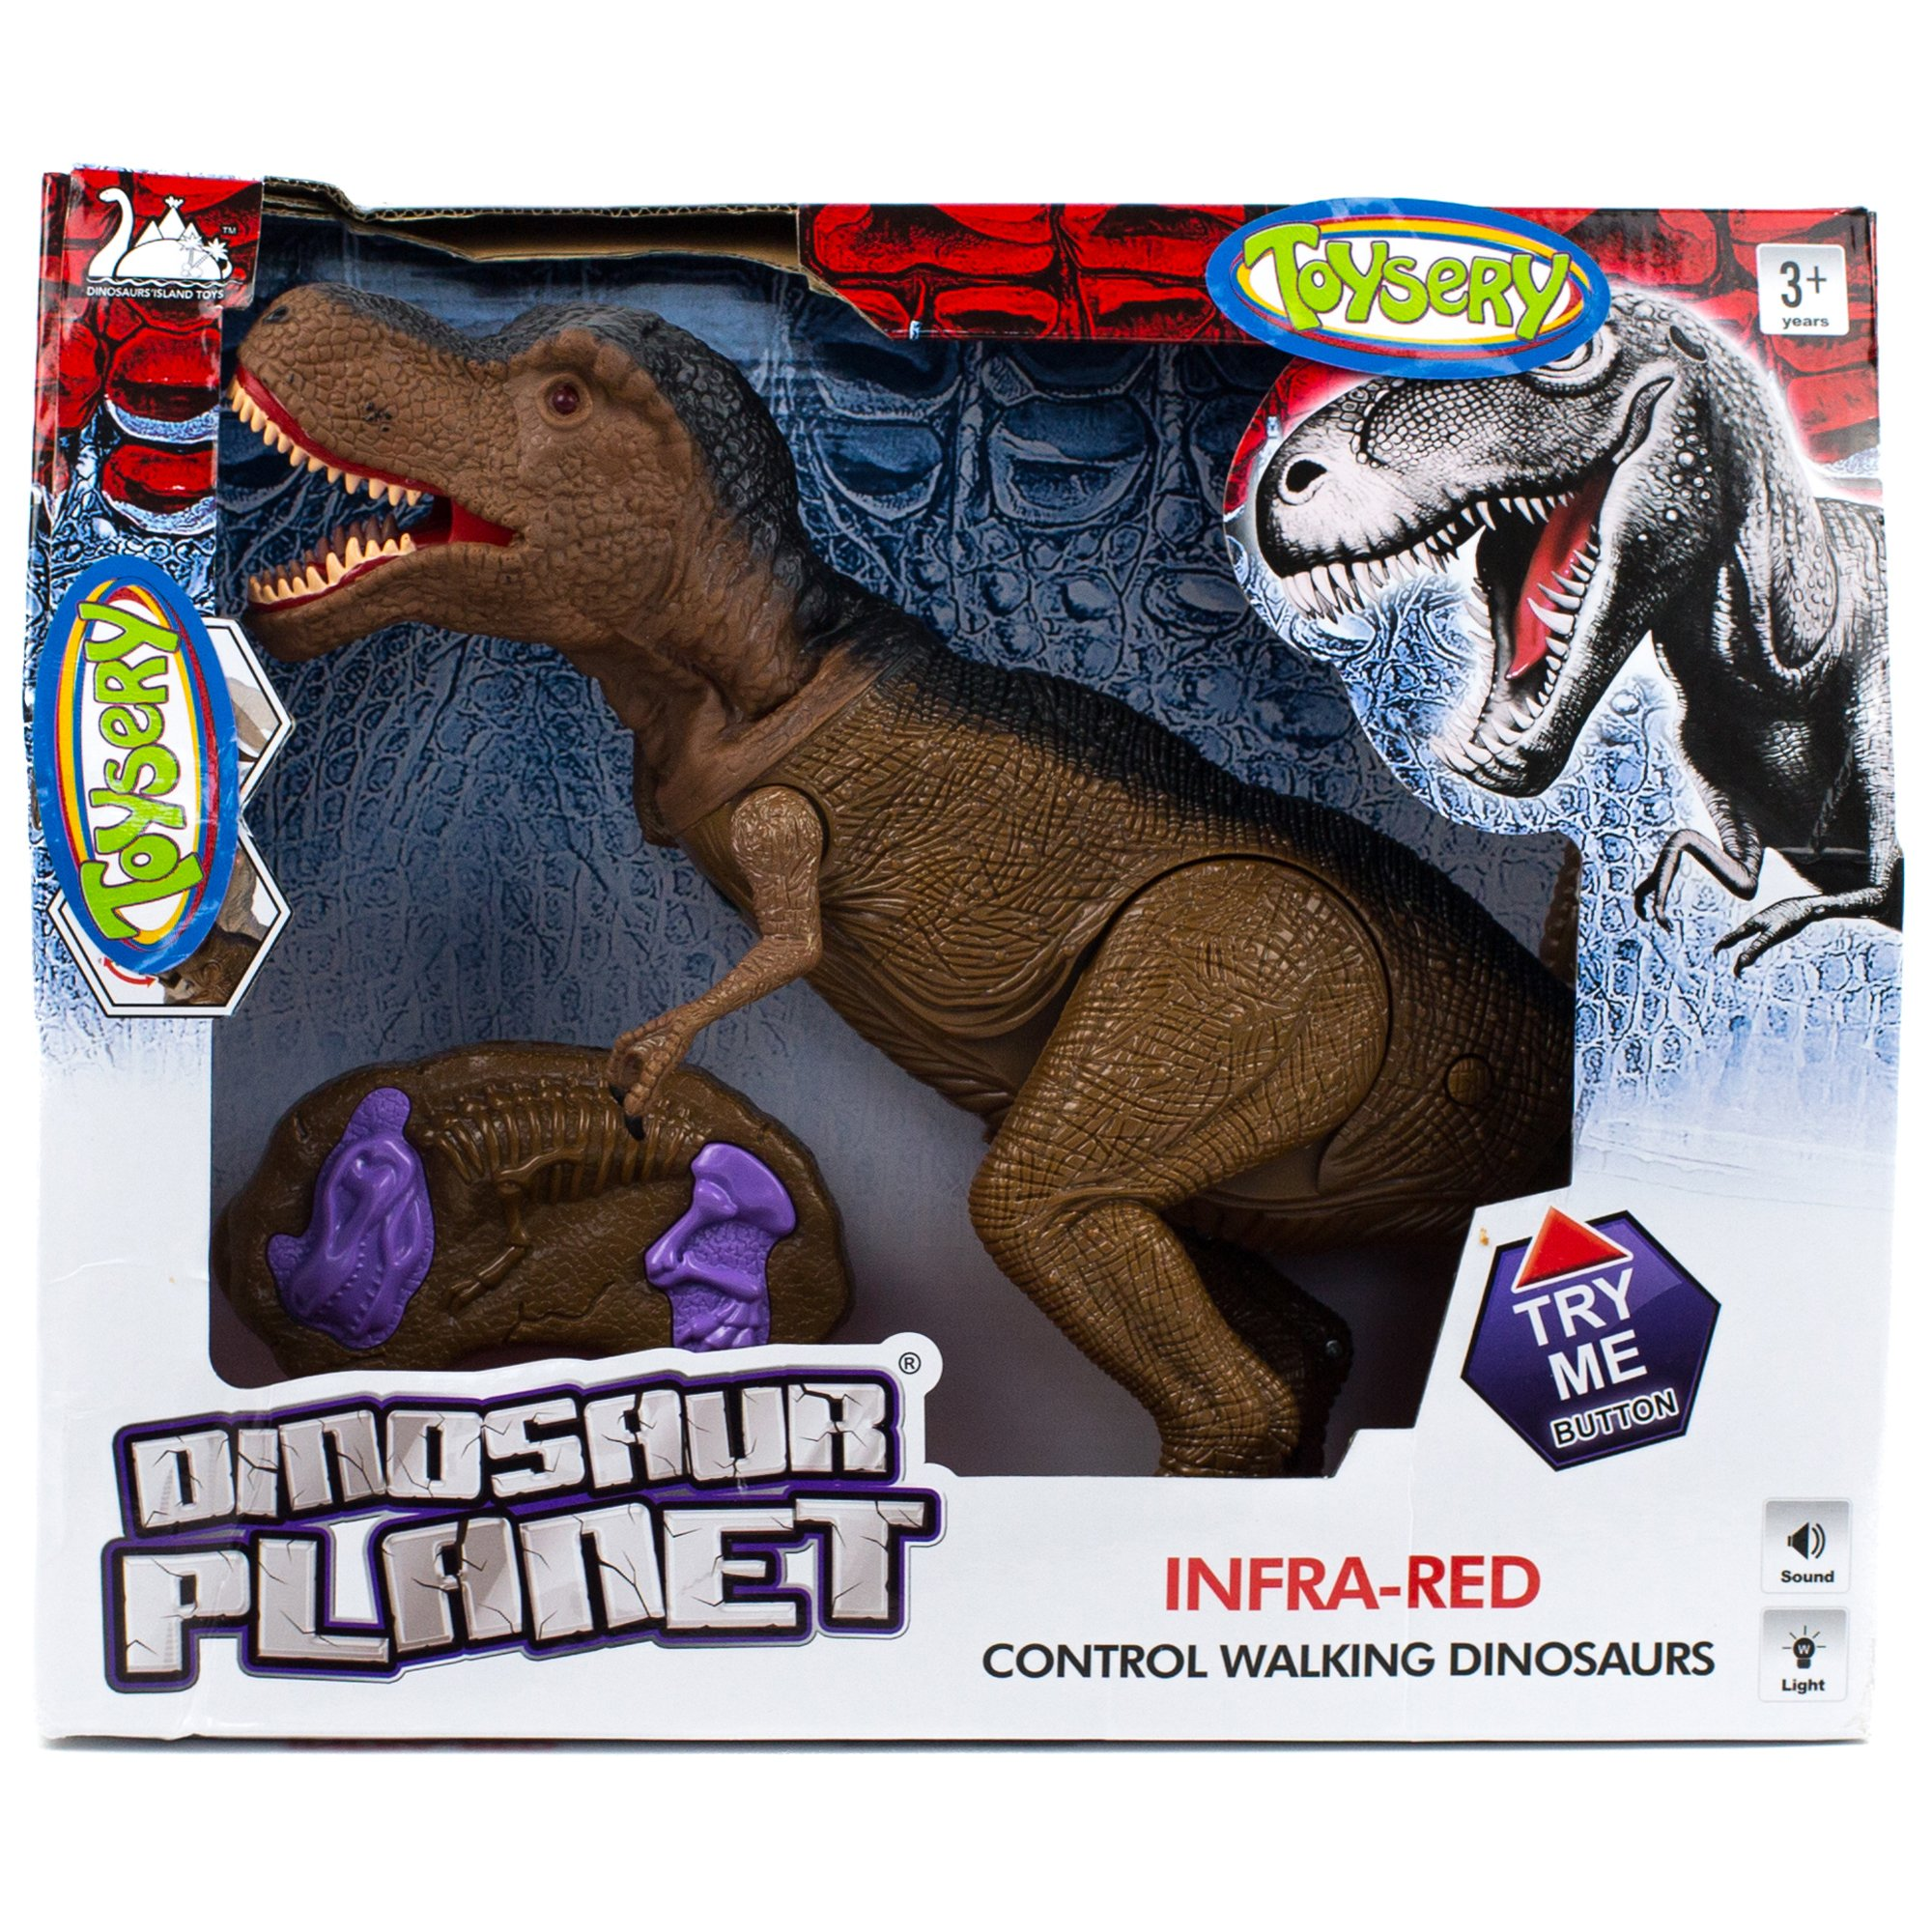 Toysery Jurassic World Dinosaur Toys with Light Up Eyes and Roaring Sound Walking Dinosaur Toy Set for 3-12 Year Boys and Girls - Perfect Remote Control Dinosaur Gifts for Birthdays by Toysery (Image #4)